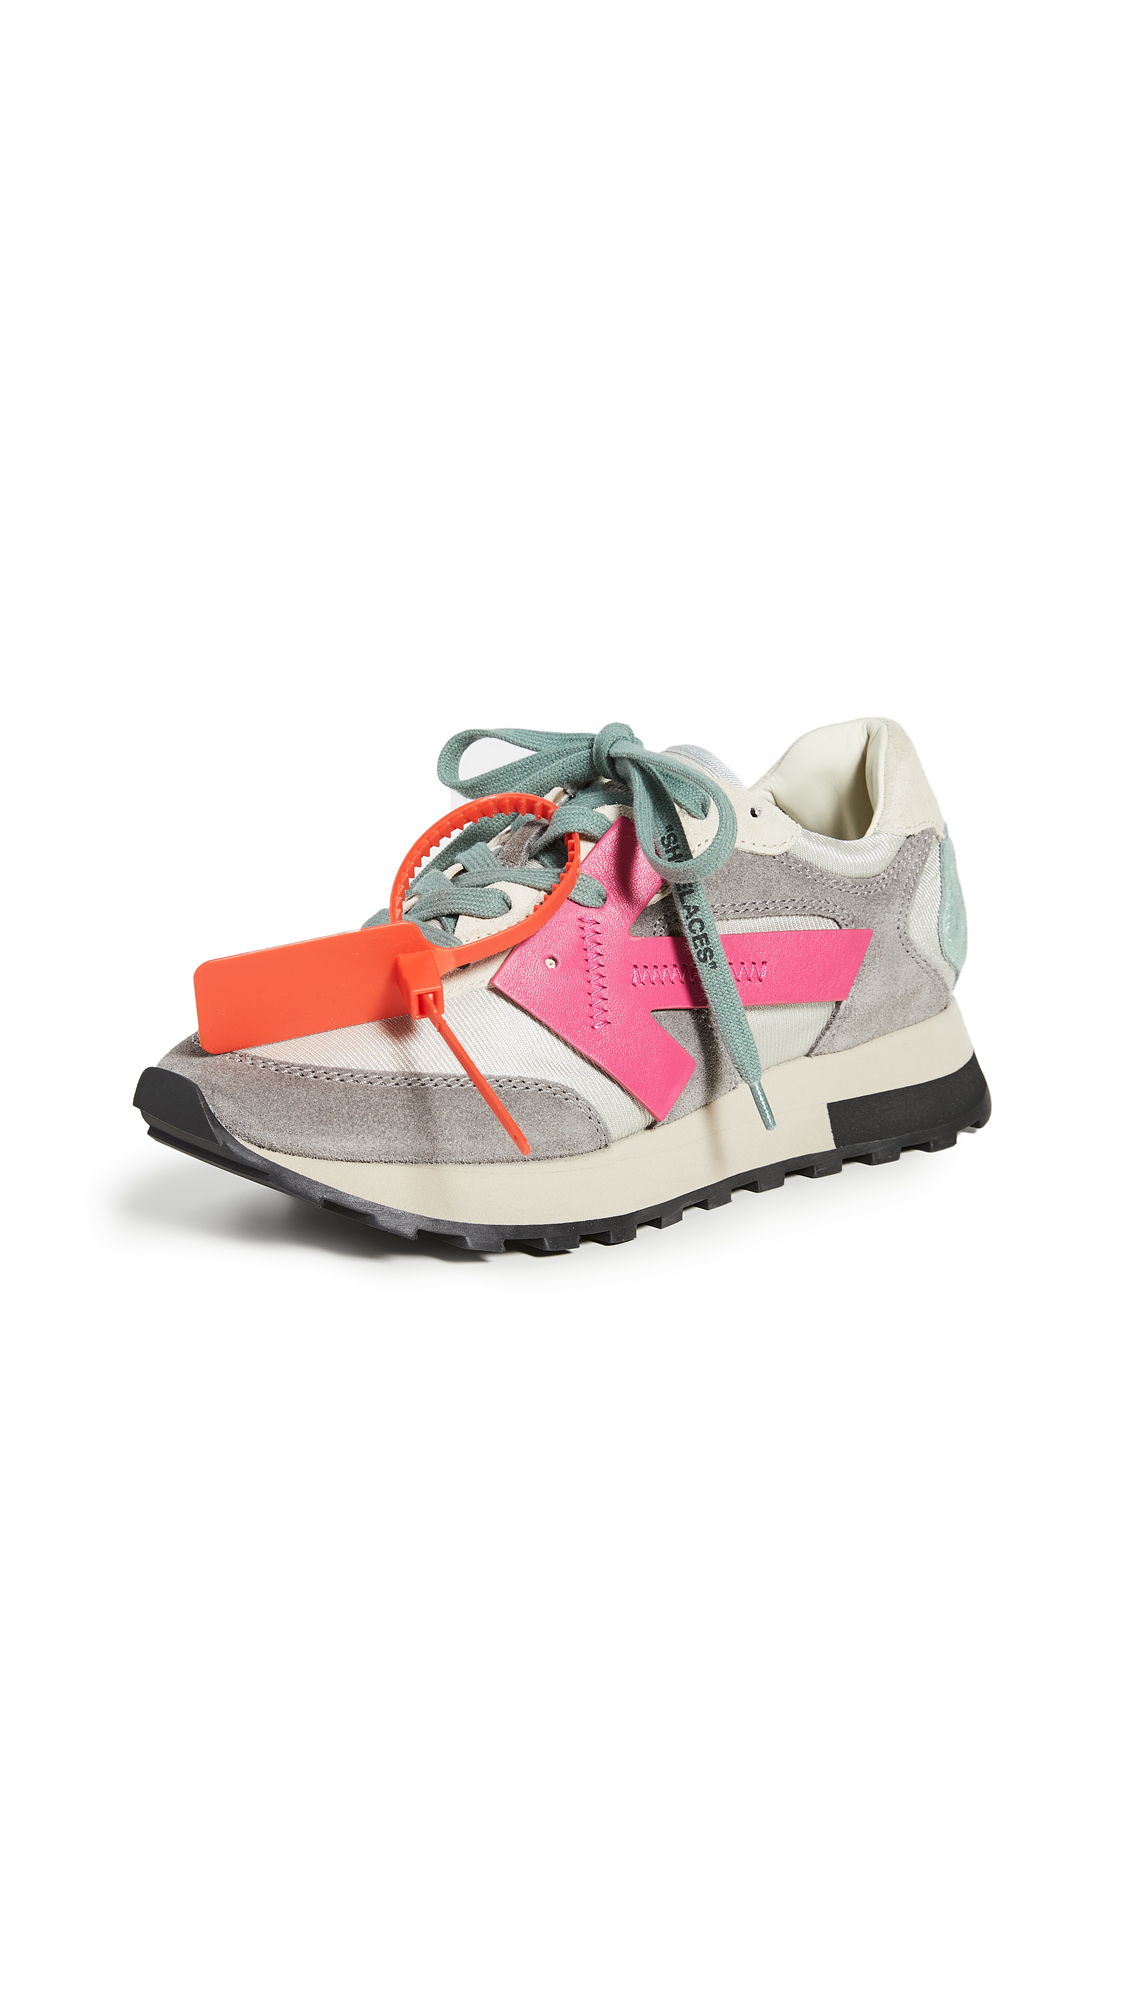 Off-White HG Runner Sneakers - 40% Off Sale